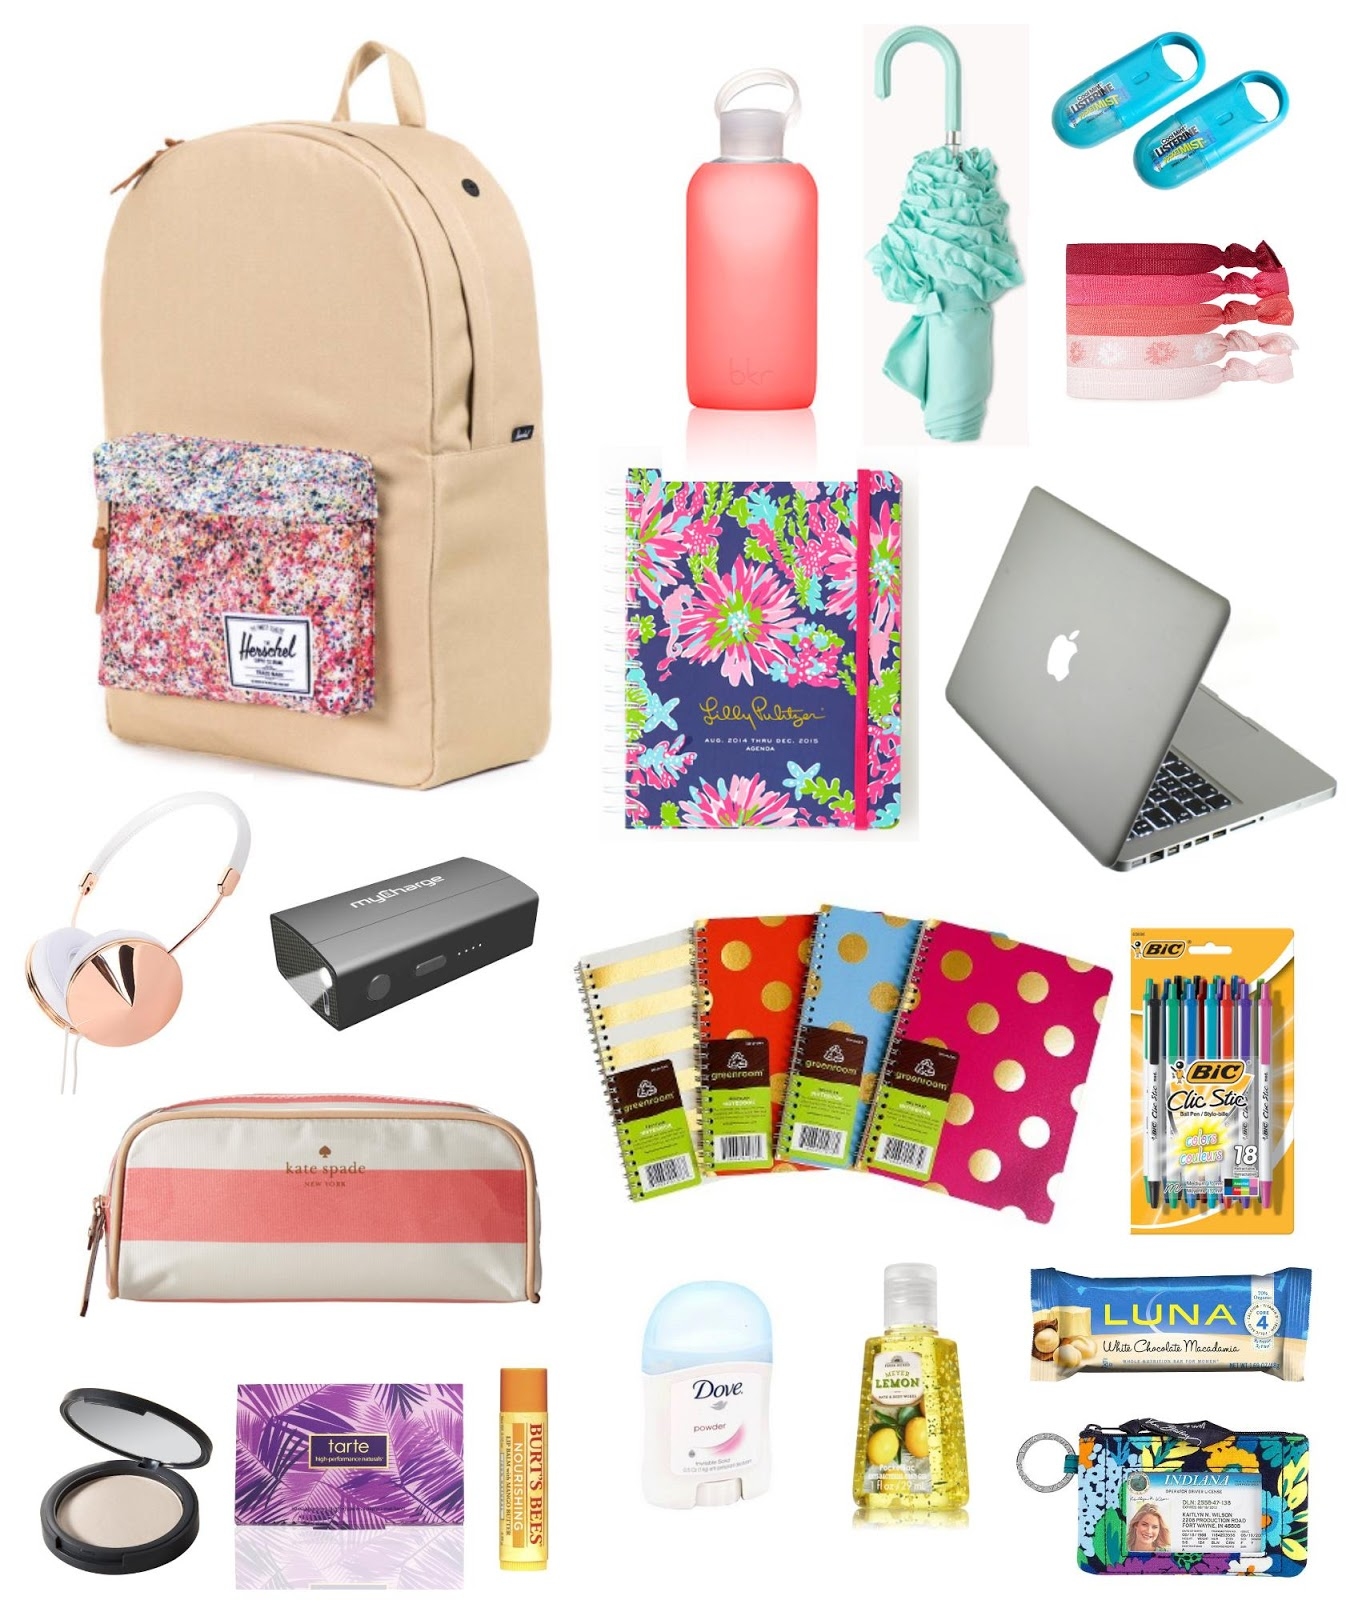 The Dorm Awards: 35 Dorm Essentials Every College Student Needs. School shopping officially starts now.